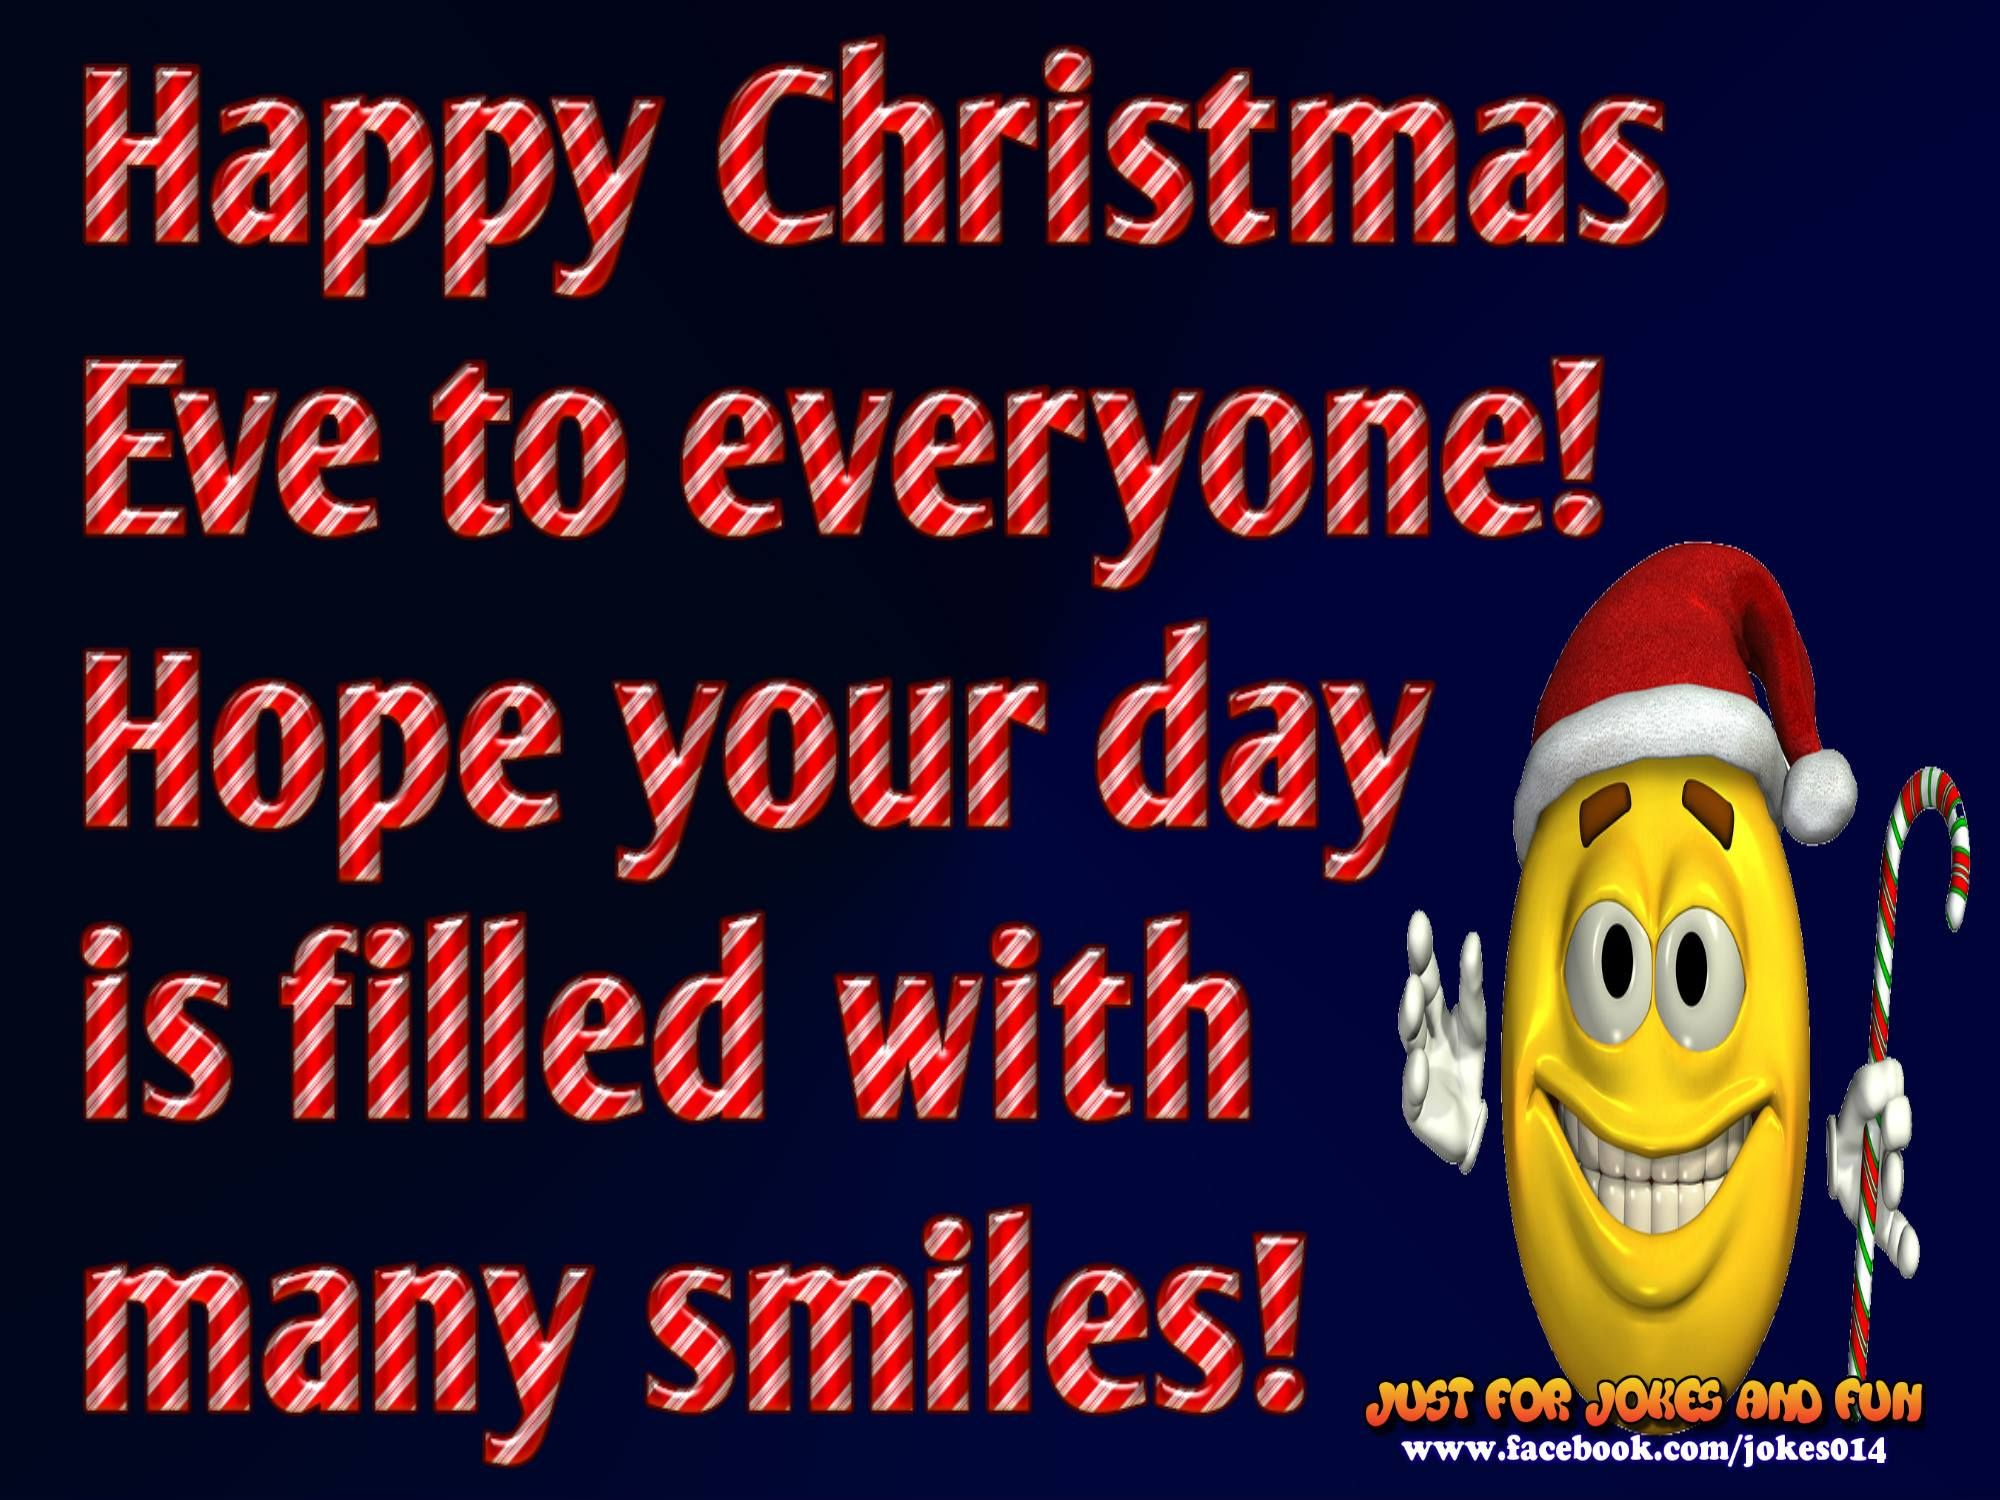 Impeccable Smiles Eve Quotes Religious Eve Quotes Boyfriend Smiles Happy Eve Everyone Hope Your Day Is Filled Happy Eve Everyone Hope Your Day Is Filled inspiration Christmas Eve Quotes